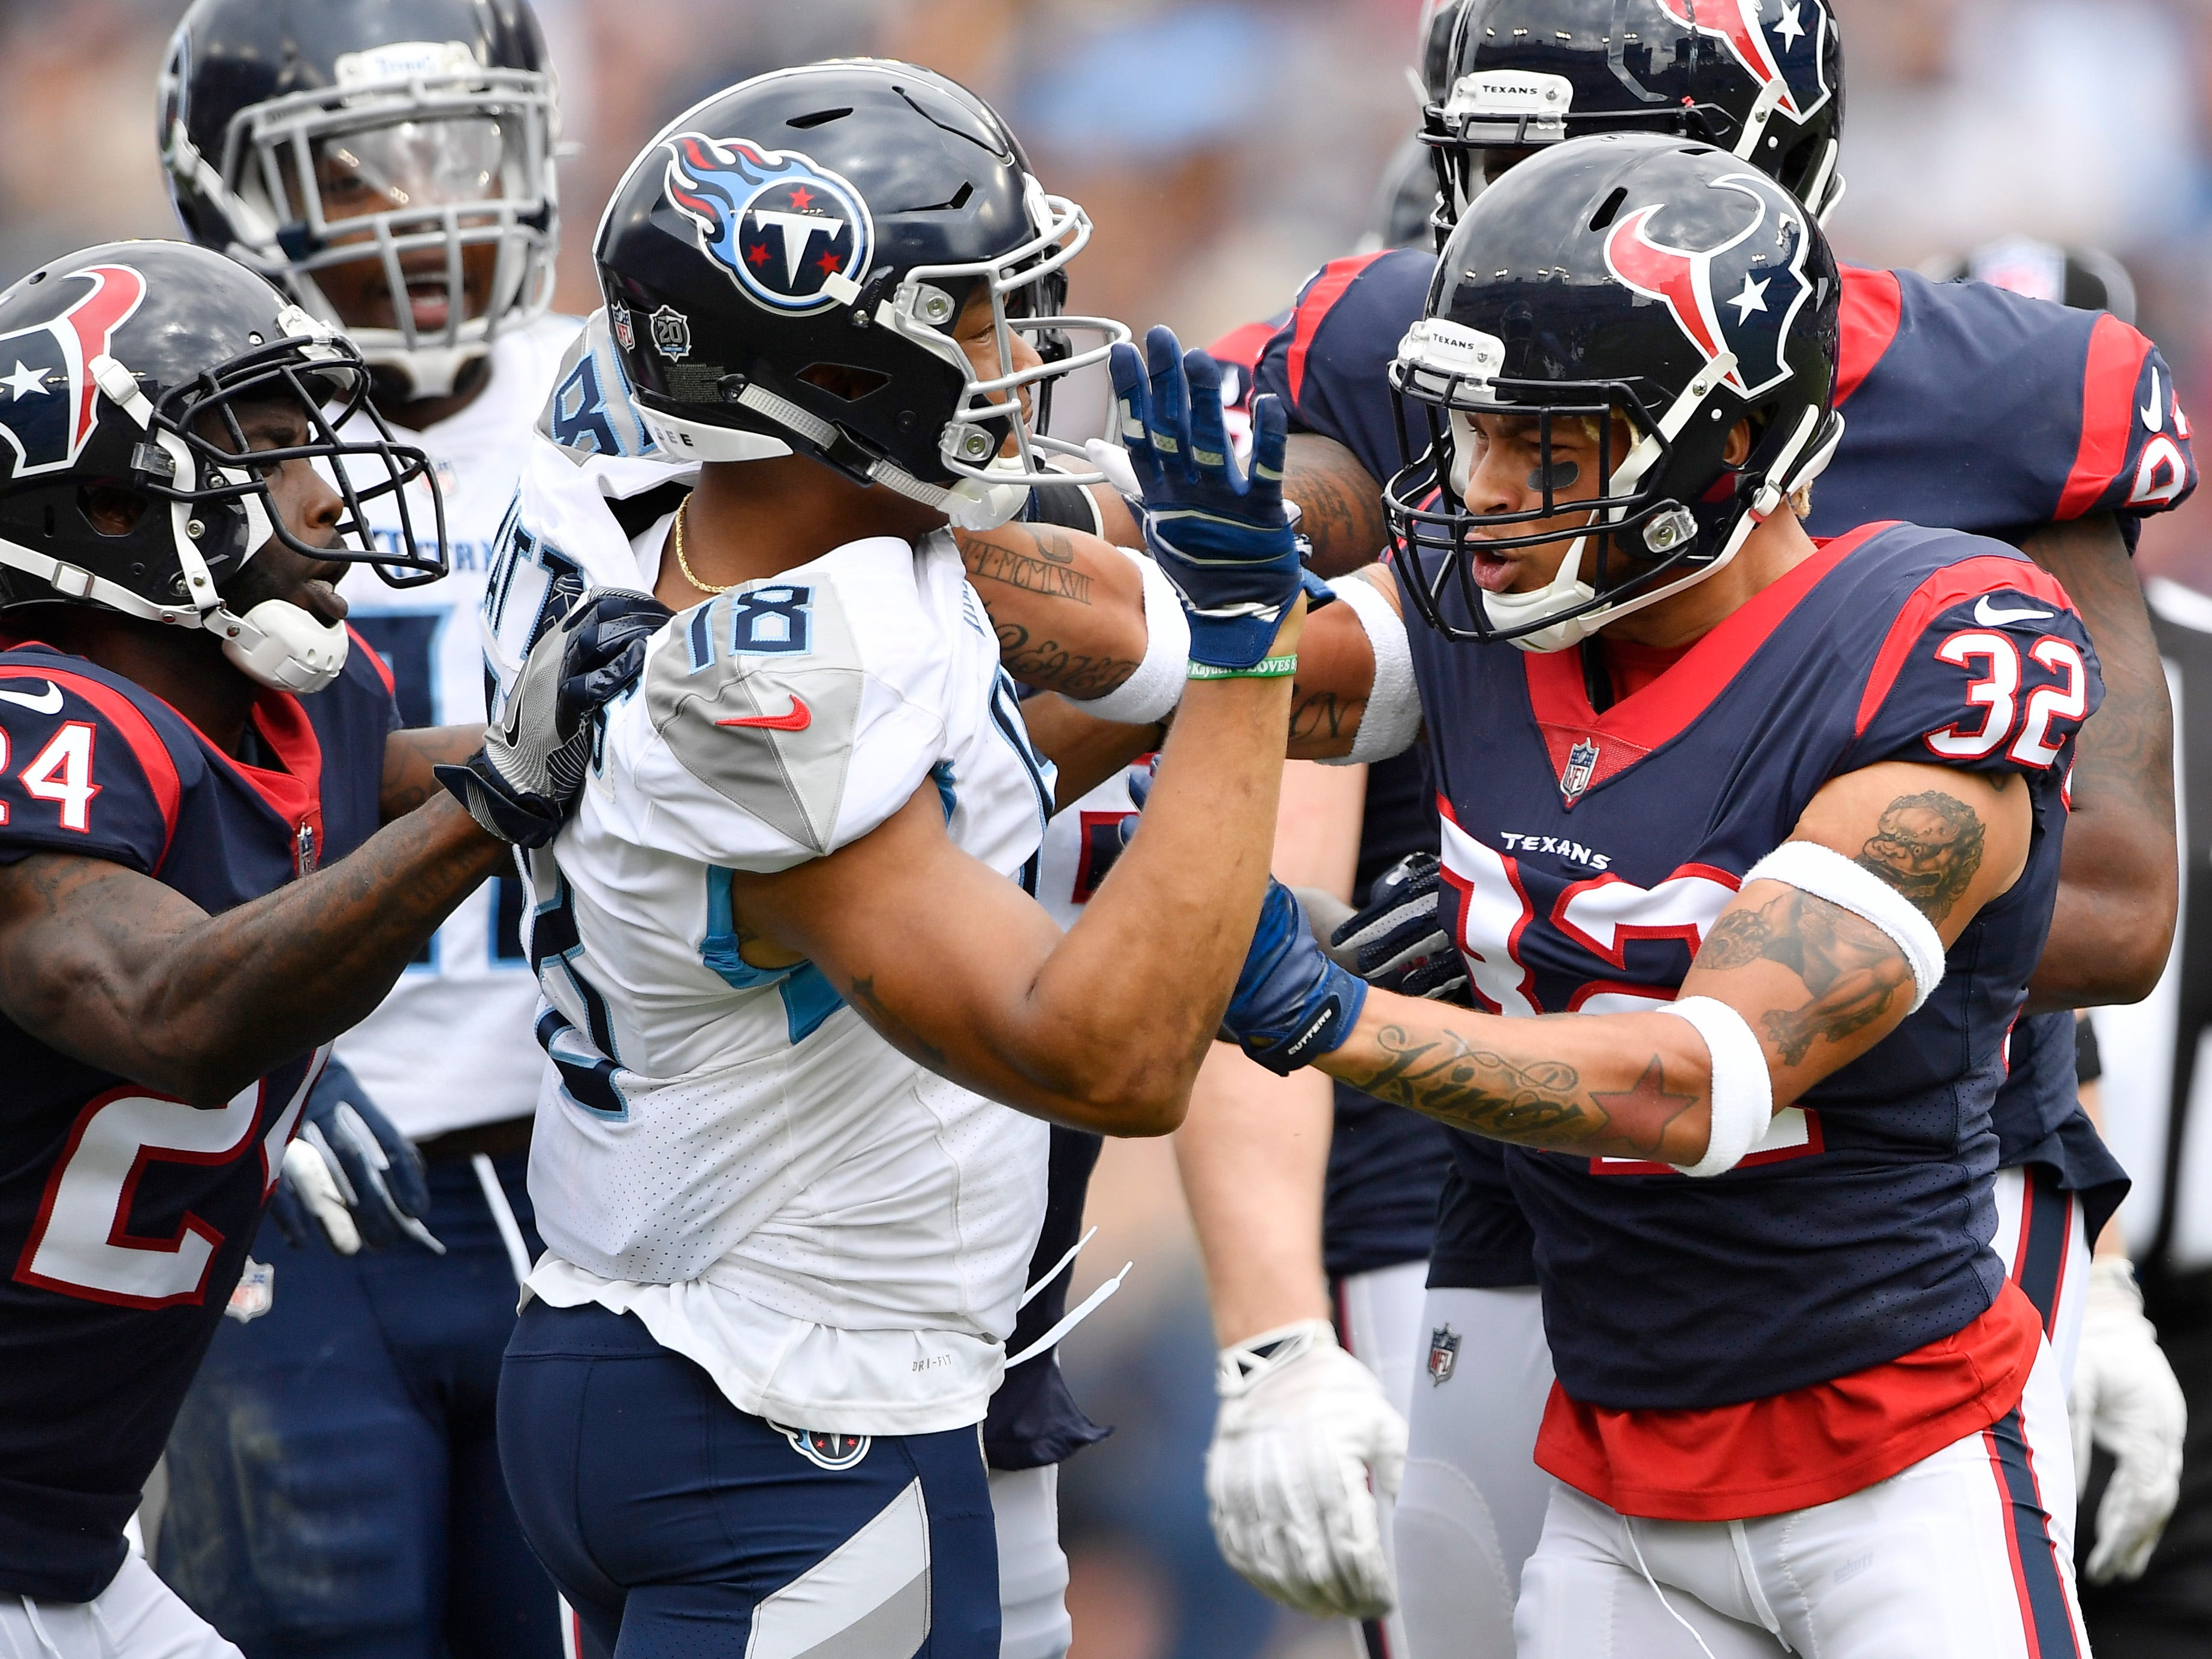 Titans wide receiver Rishard Matthews (18) and Texans safety Tyrann Mathieu (32) get into a scuffle in the first quarter at Nissan Stadium Sunday, Sept. 16, 2018, in Nashville, Tenn.